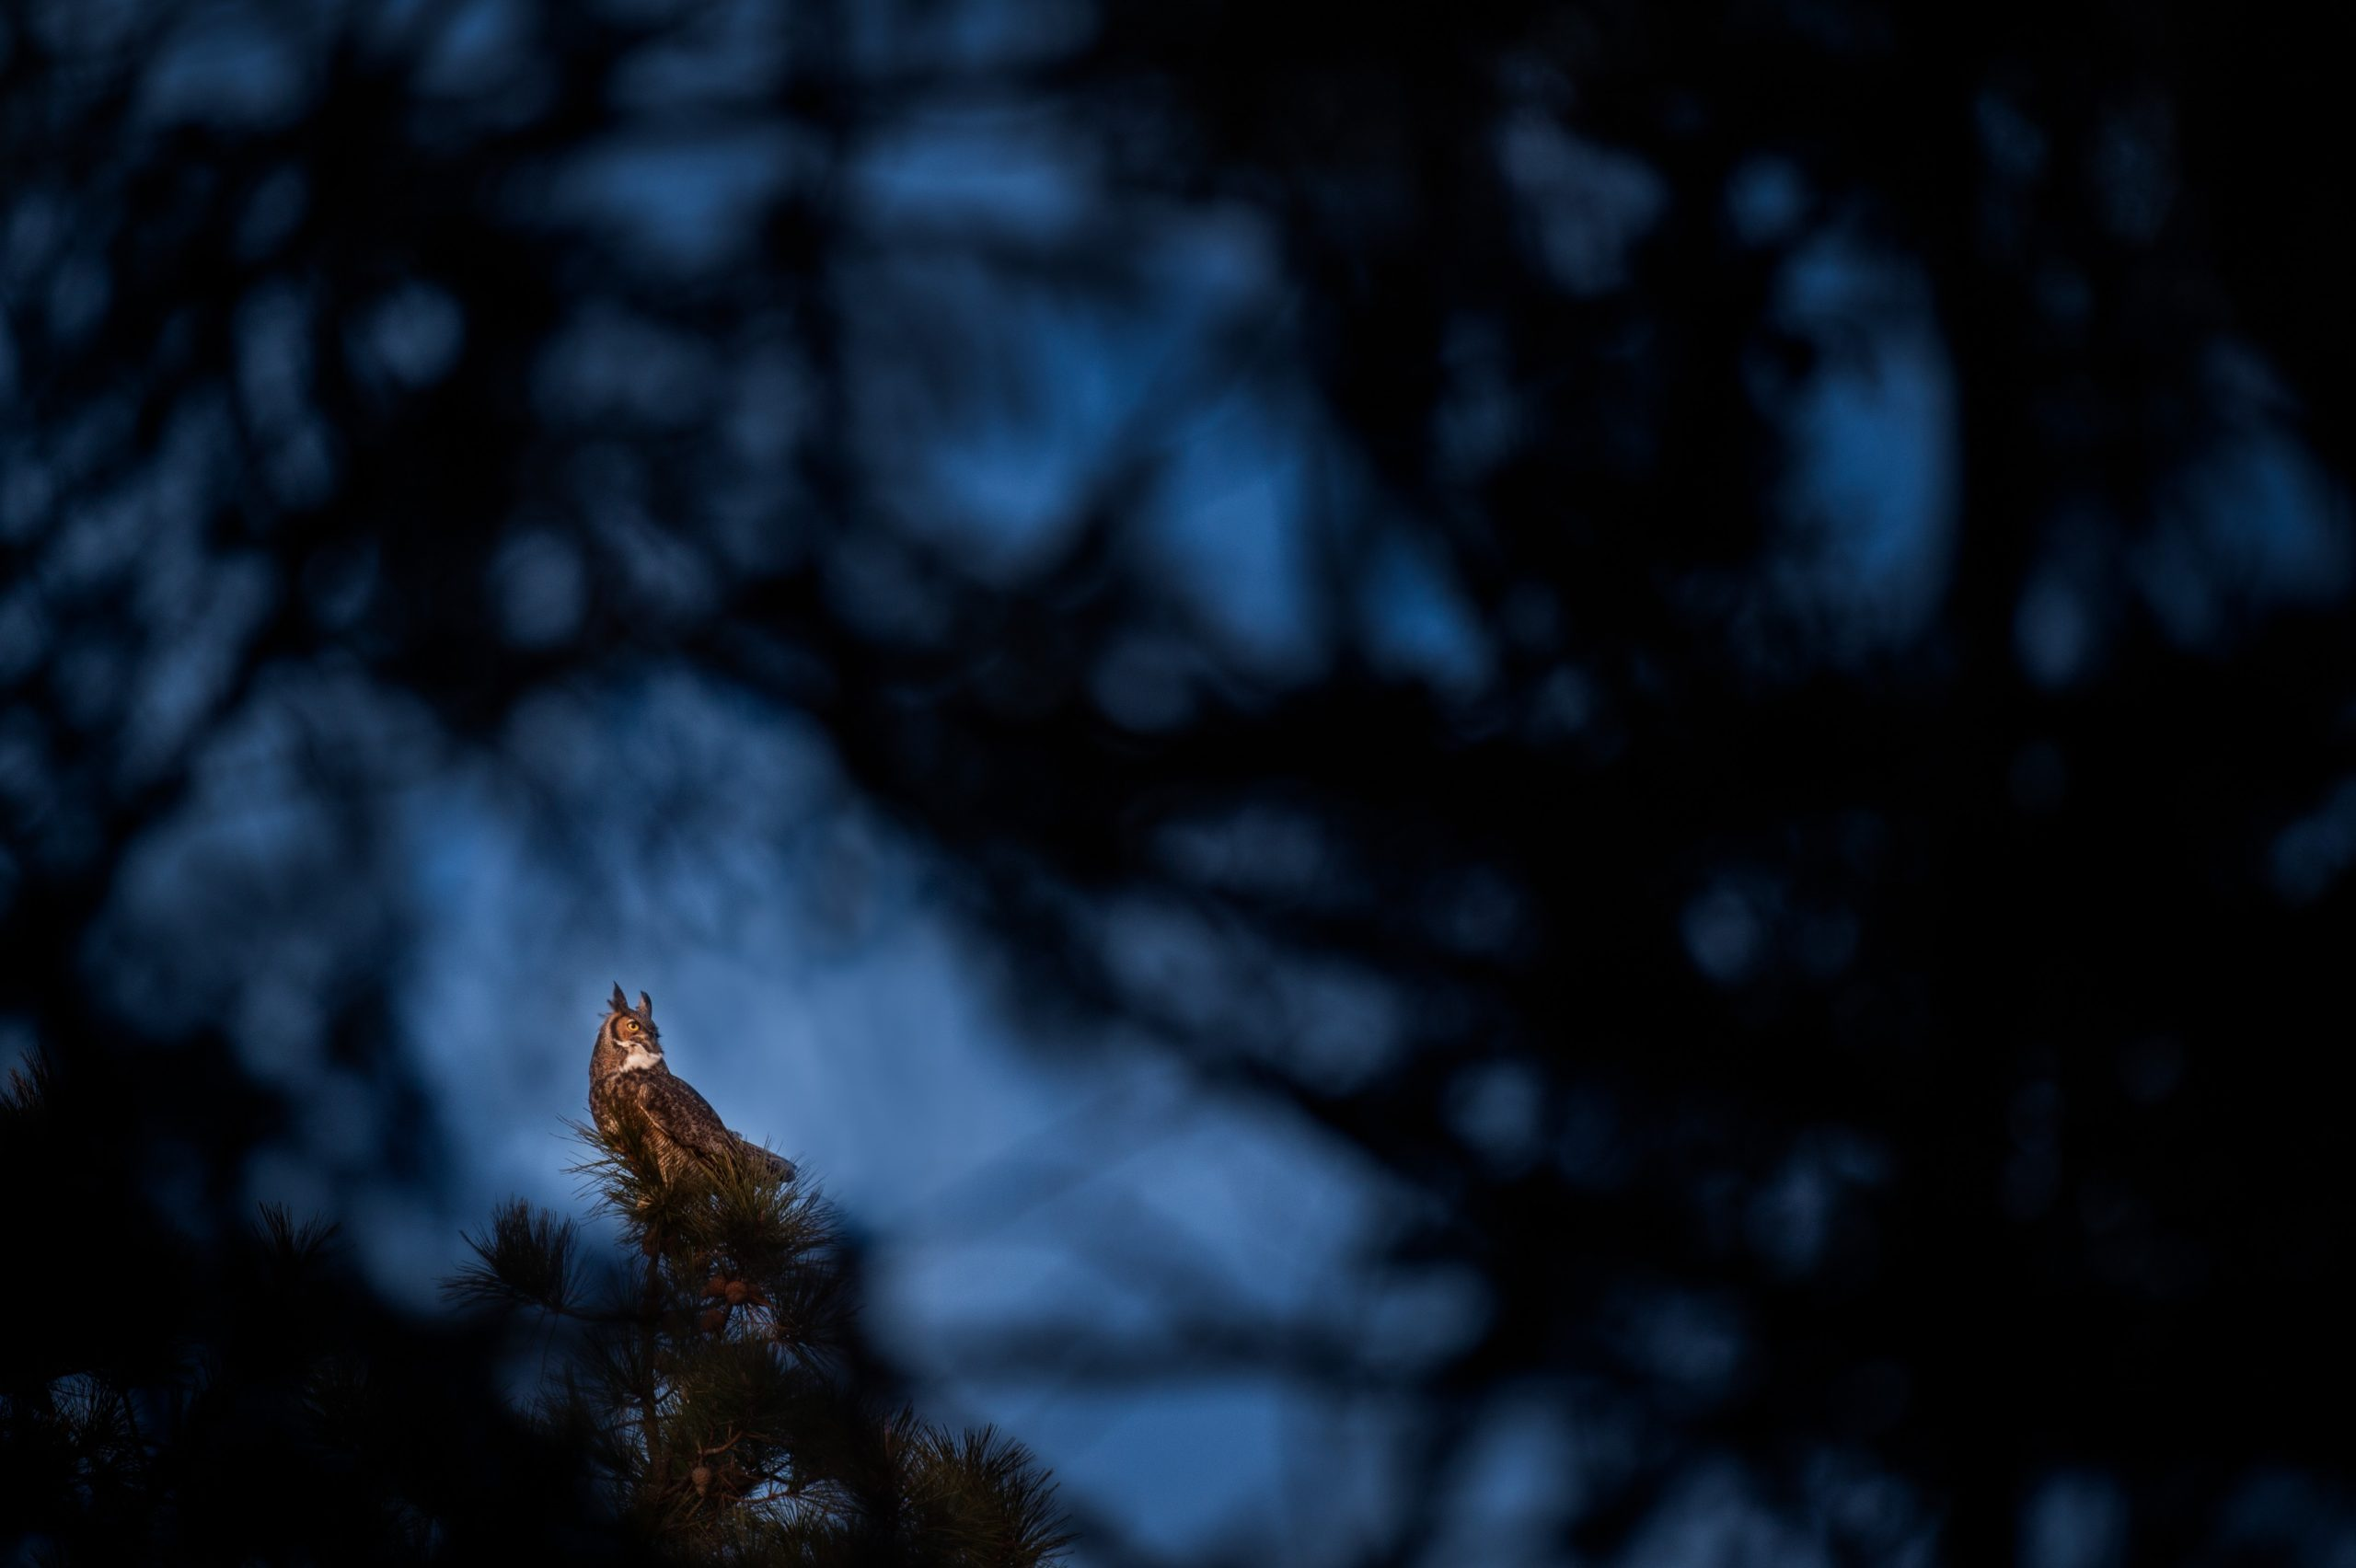 A Great Horned Owl perched on top of a Pine Tree at dusk.